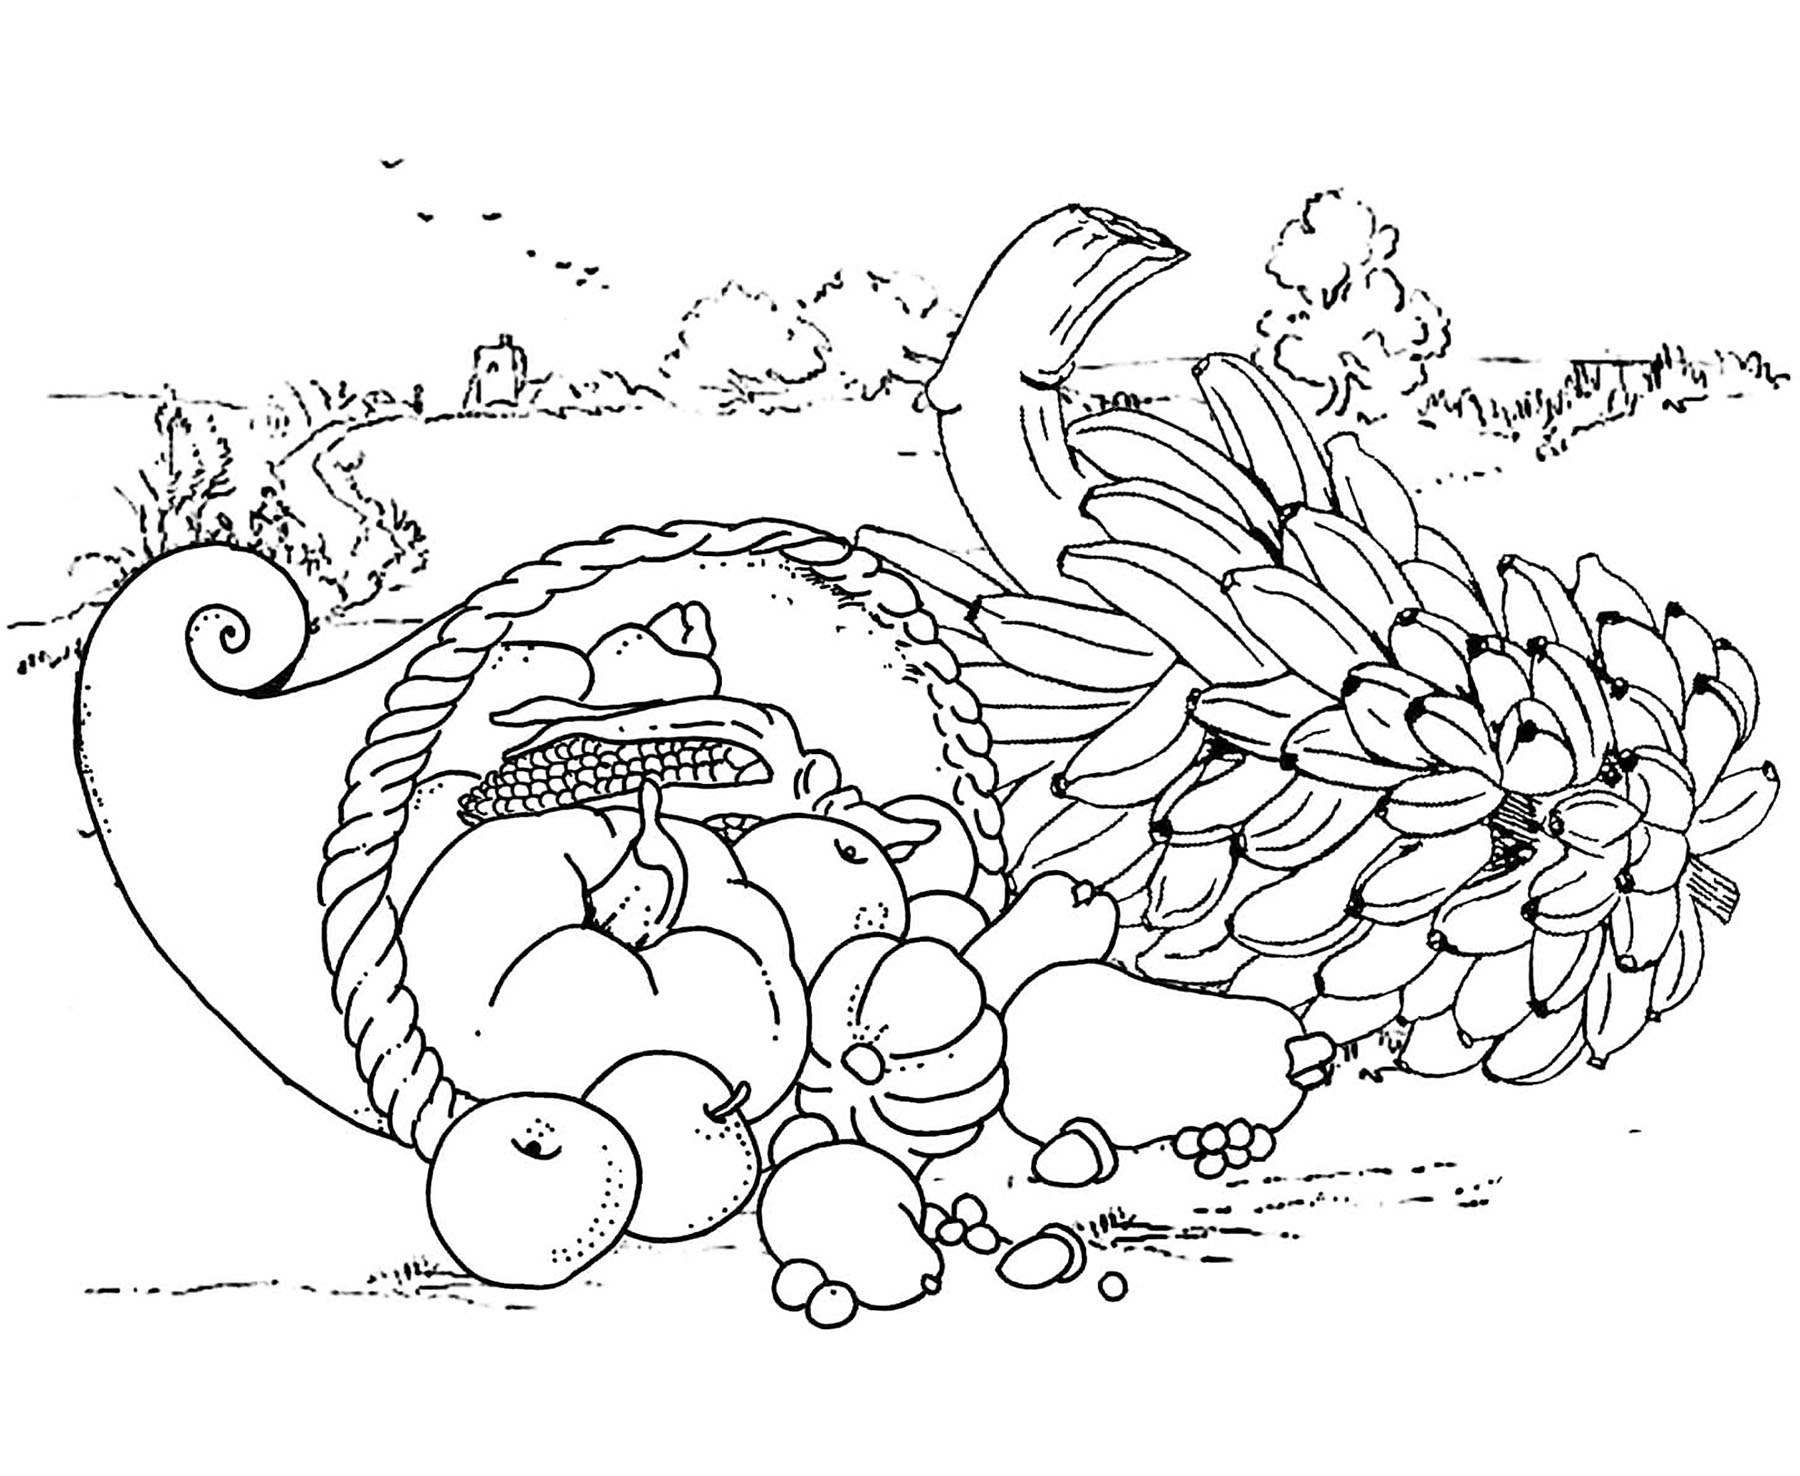 Plump Thanksgiving Turkey Coloring Page | Thanksgiving coloring ... | 1476x1800